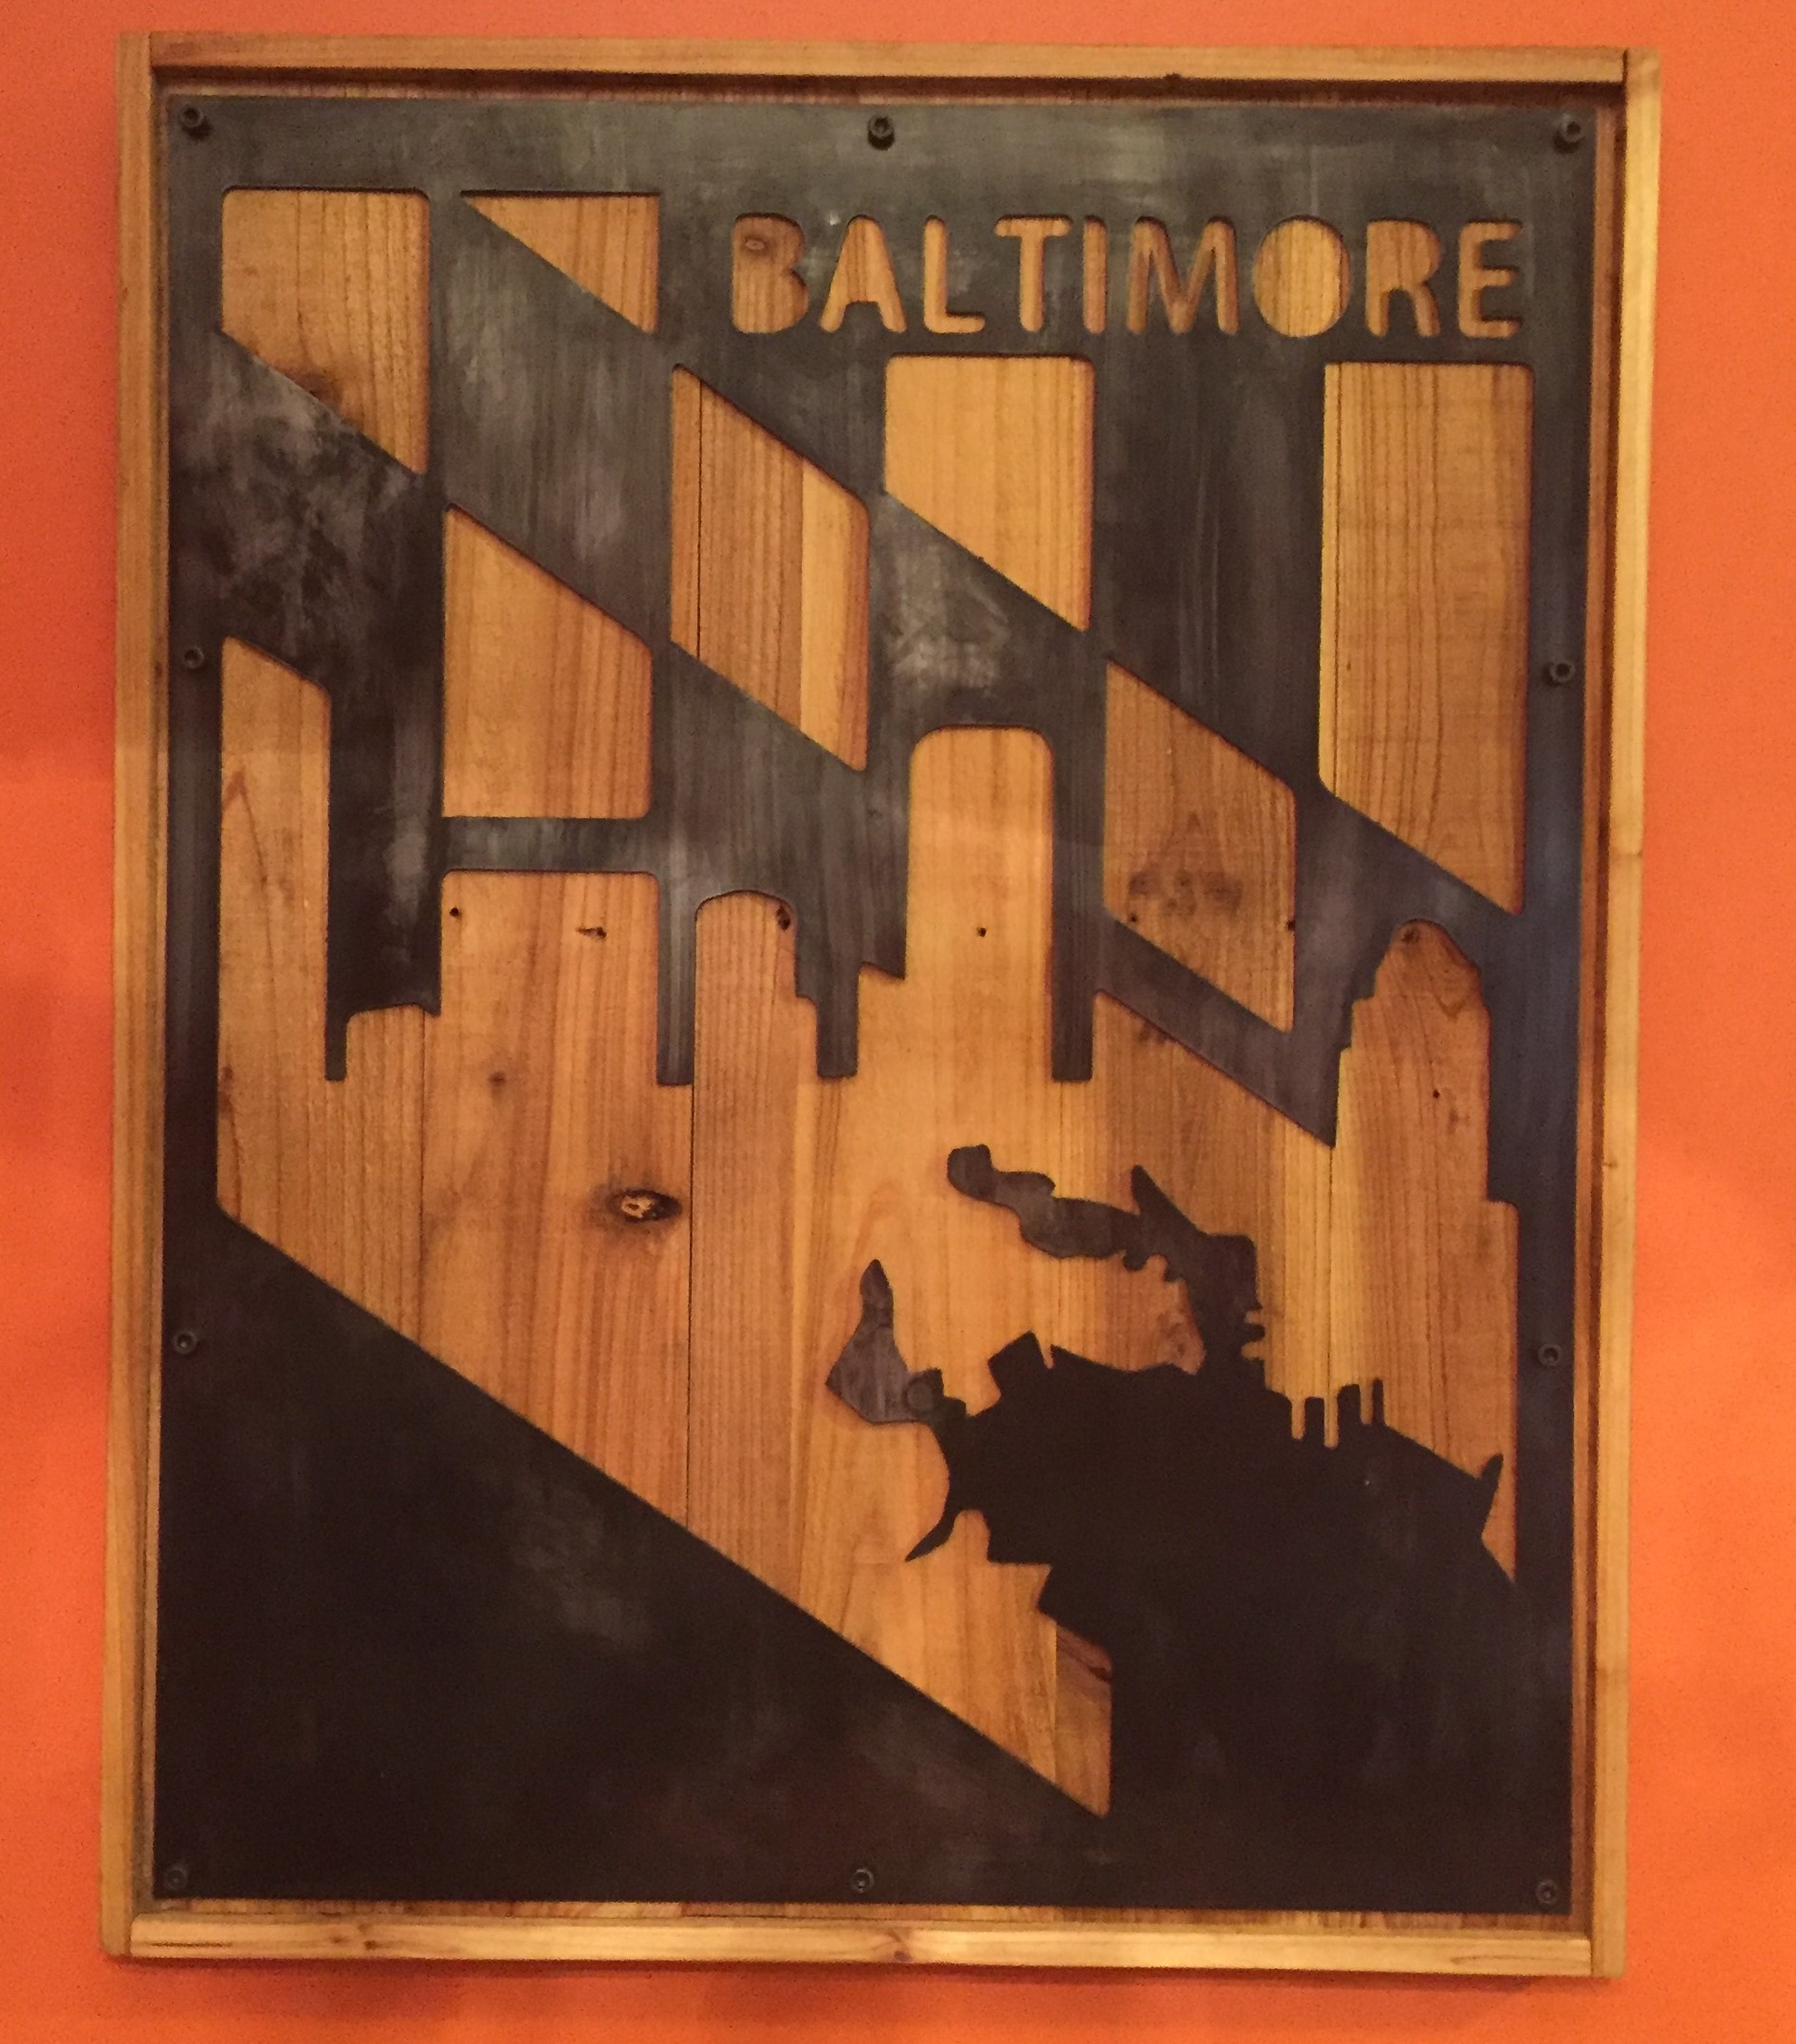 Baltimore art